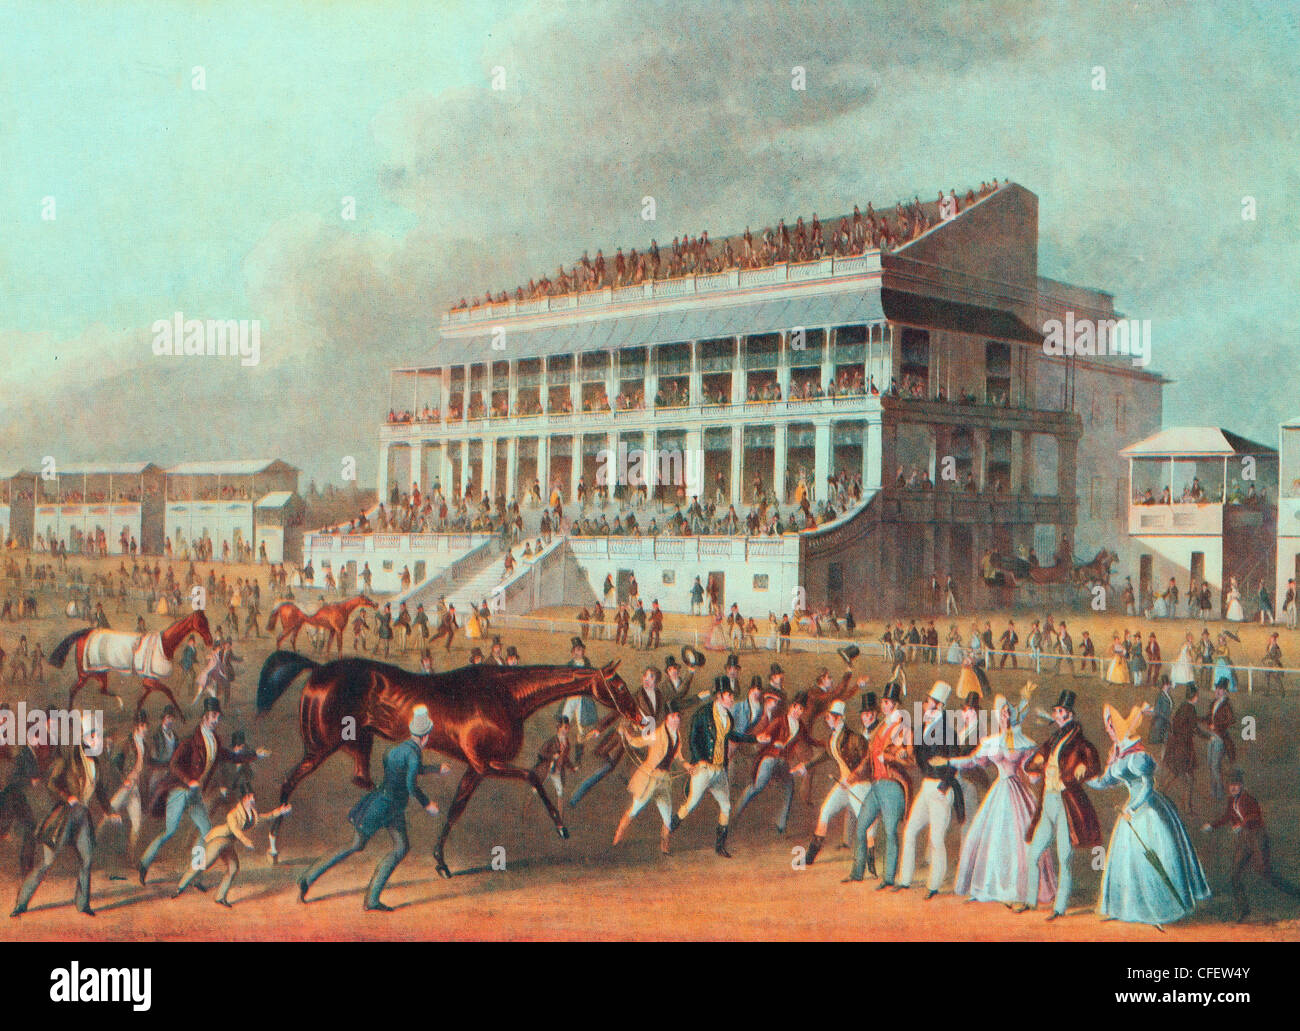 Epsom Grand stands - Winner of the Derby Race, 1836 - Stock Image